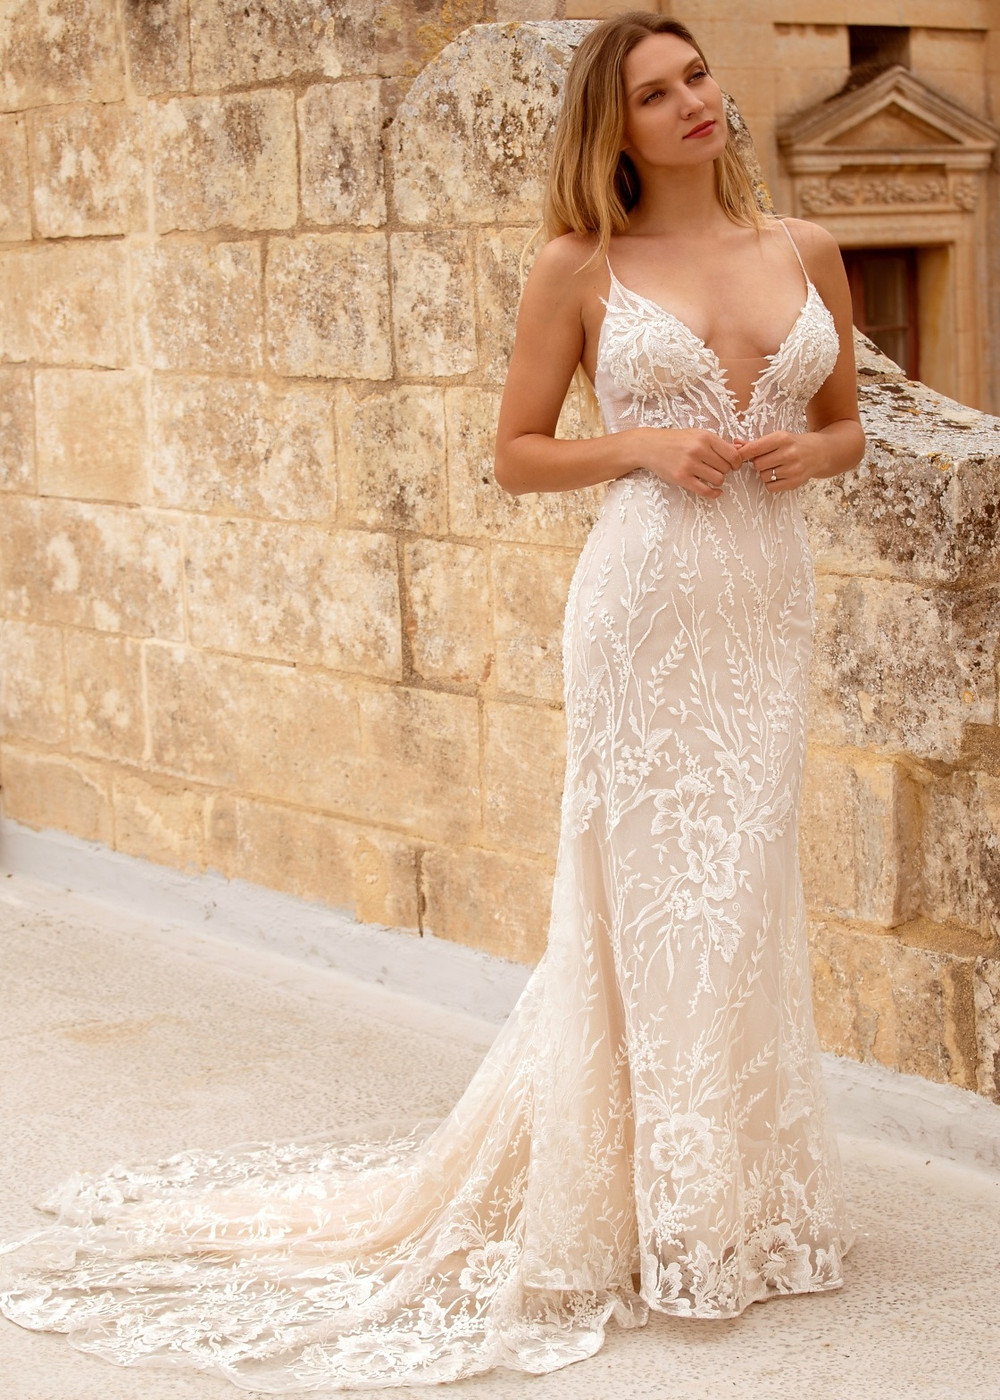 Love Affair by Dando London. Wedding dress suggestion for short / petite bride. Plunging v-neck column dress with spaghetti straps.